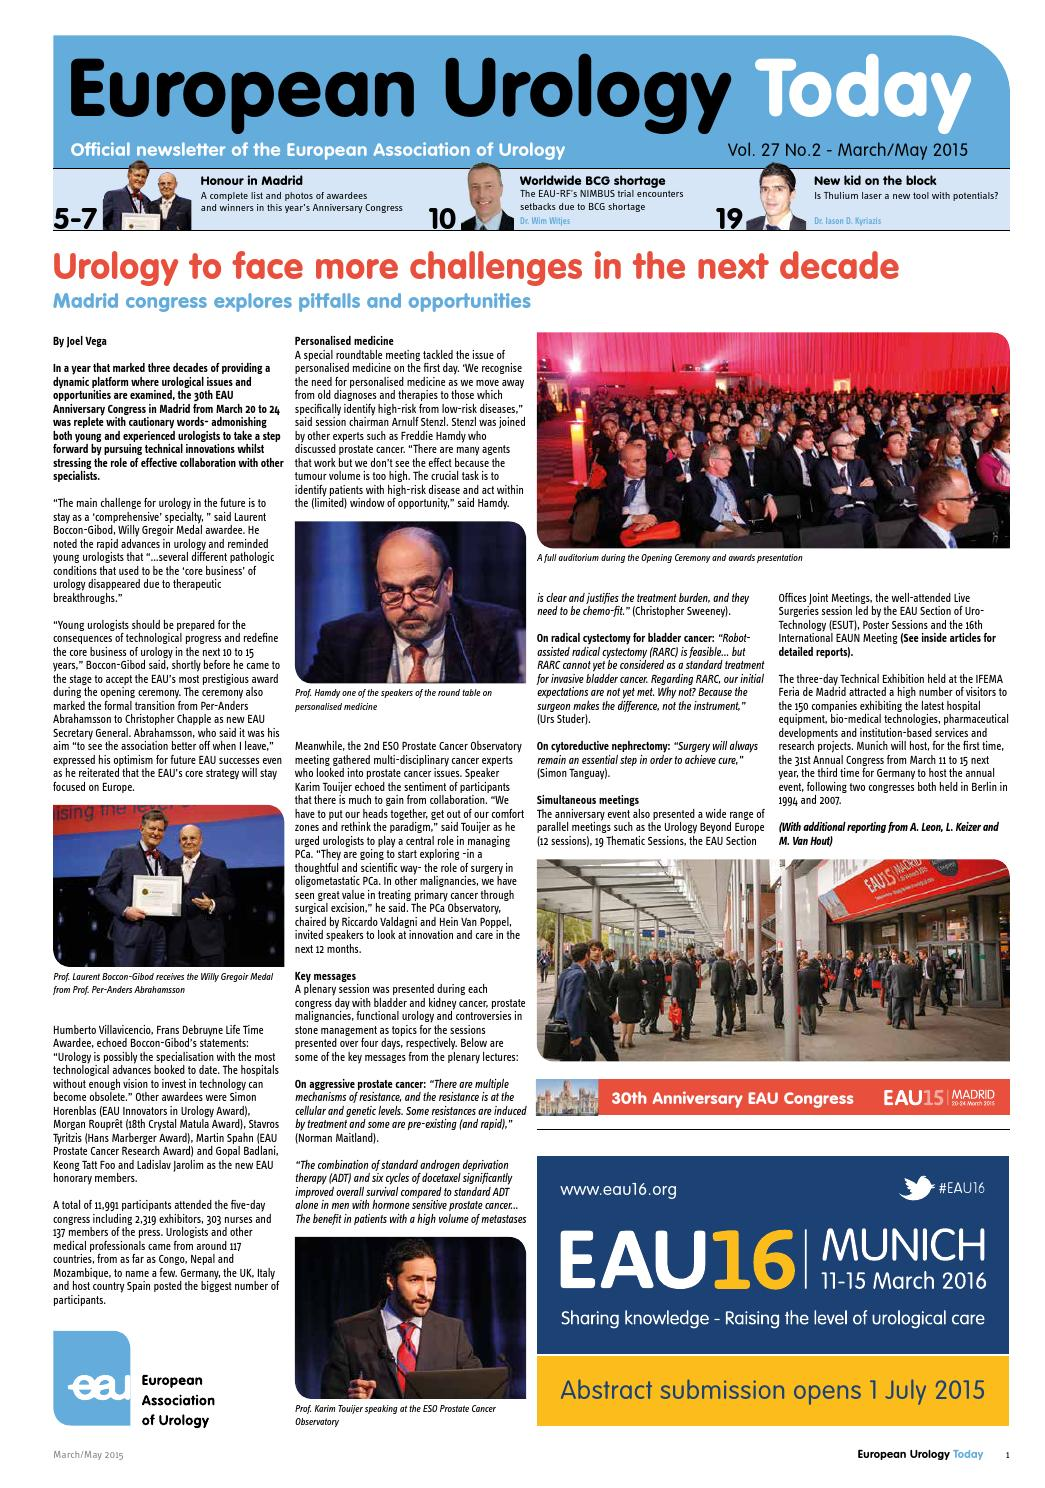 European Urology Today - Vol. 27 No.2 - March/May 2015 by ...